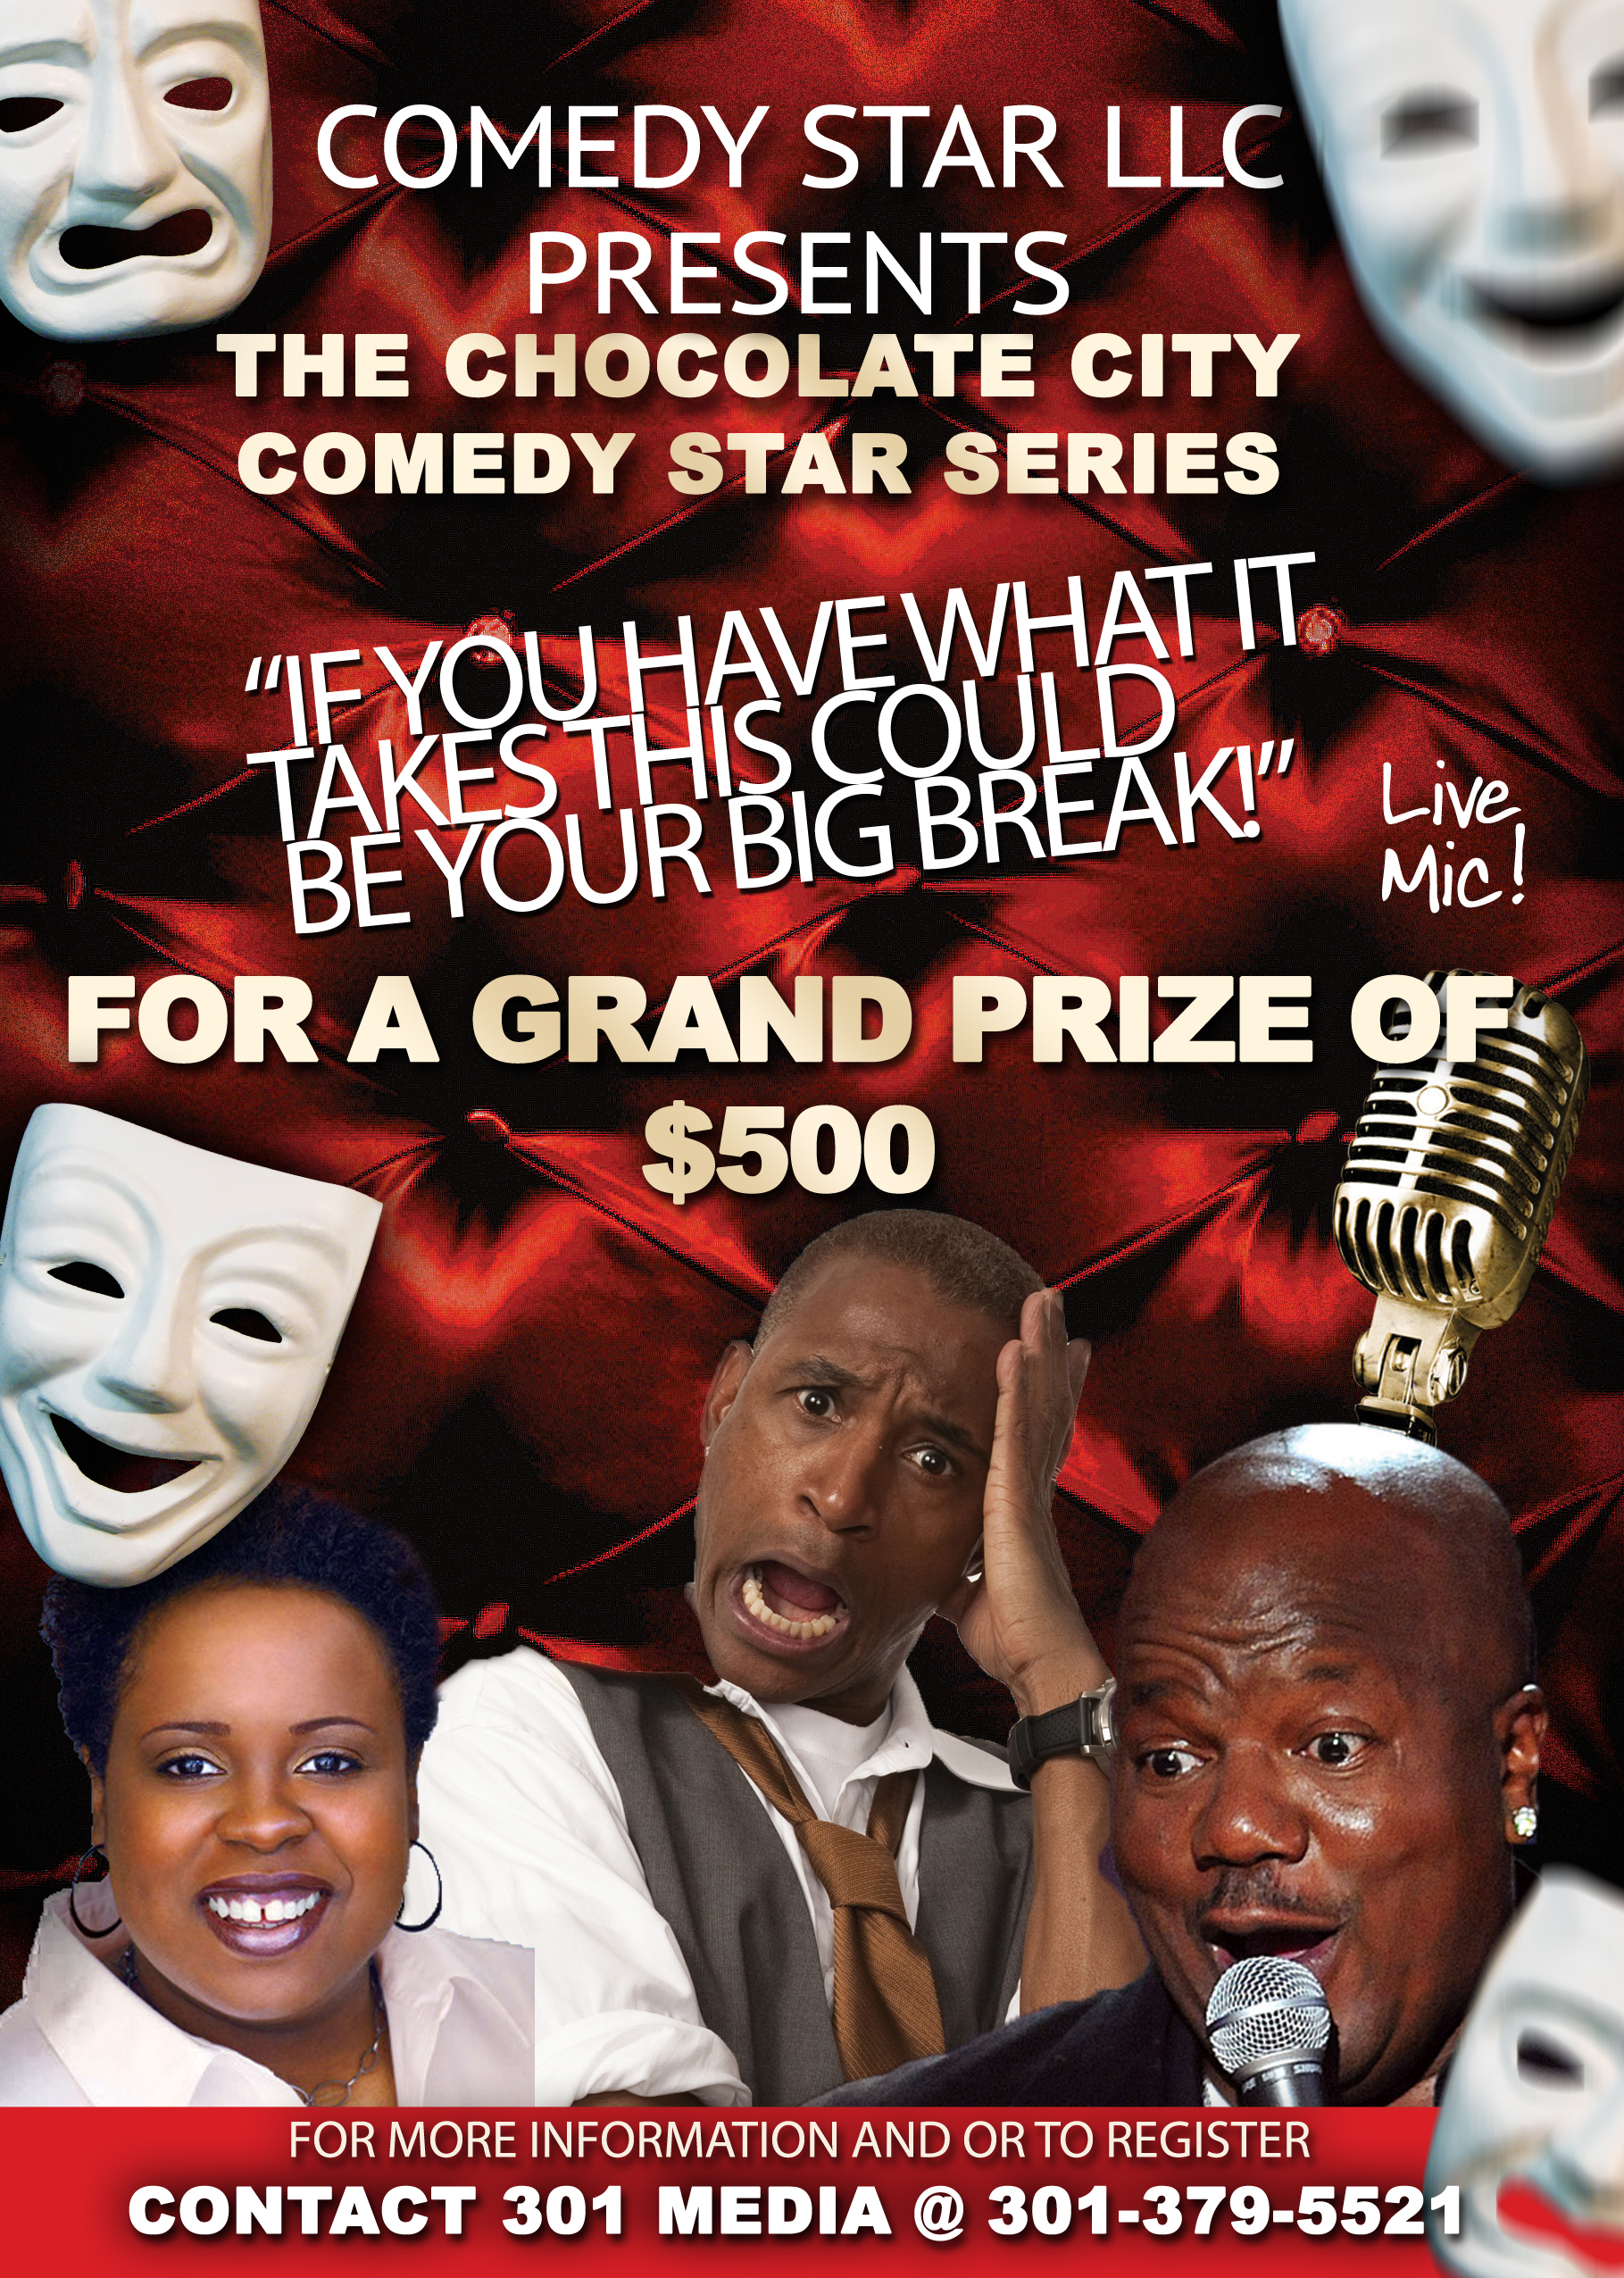 THE CHOCOLATE CITY COMEDY STAR SERIES